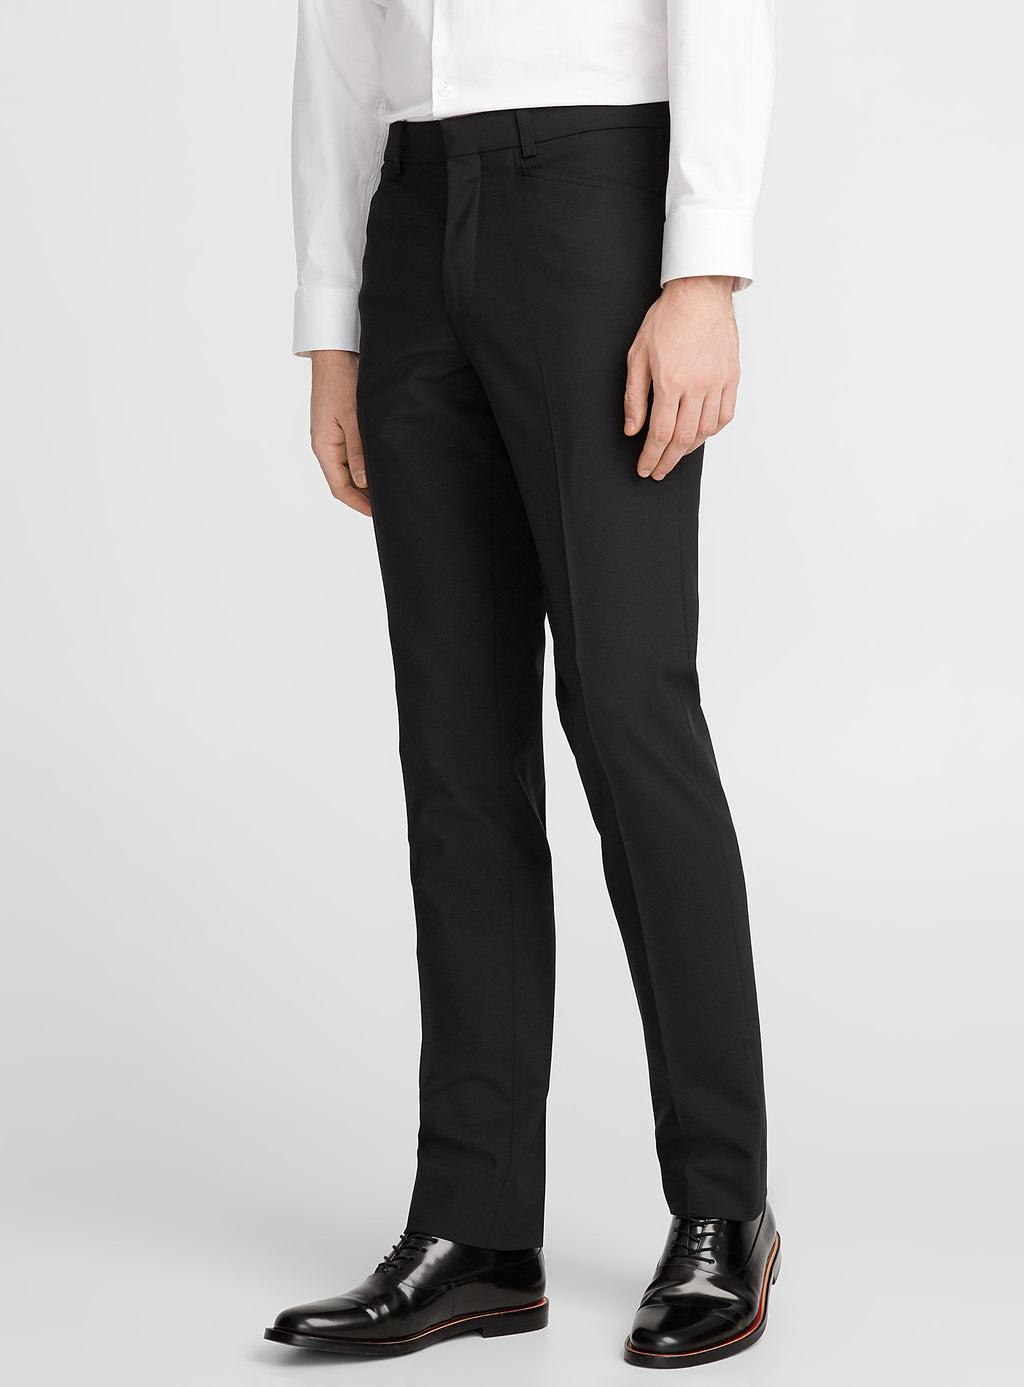 Franco • Black • Travel Pants • Slim Fit • Stretch • Riviera by Jack Victor •